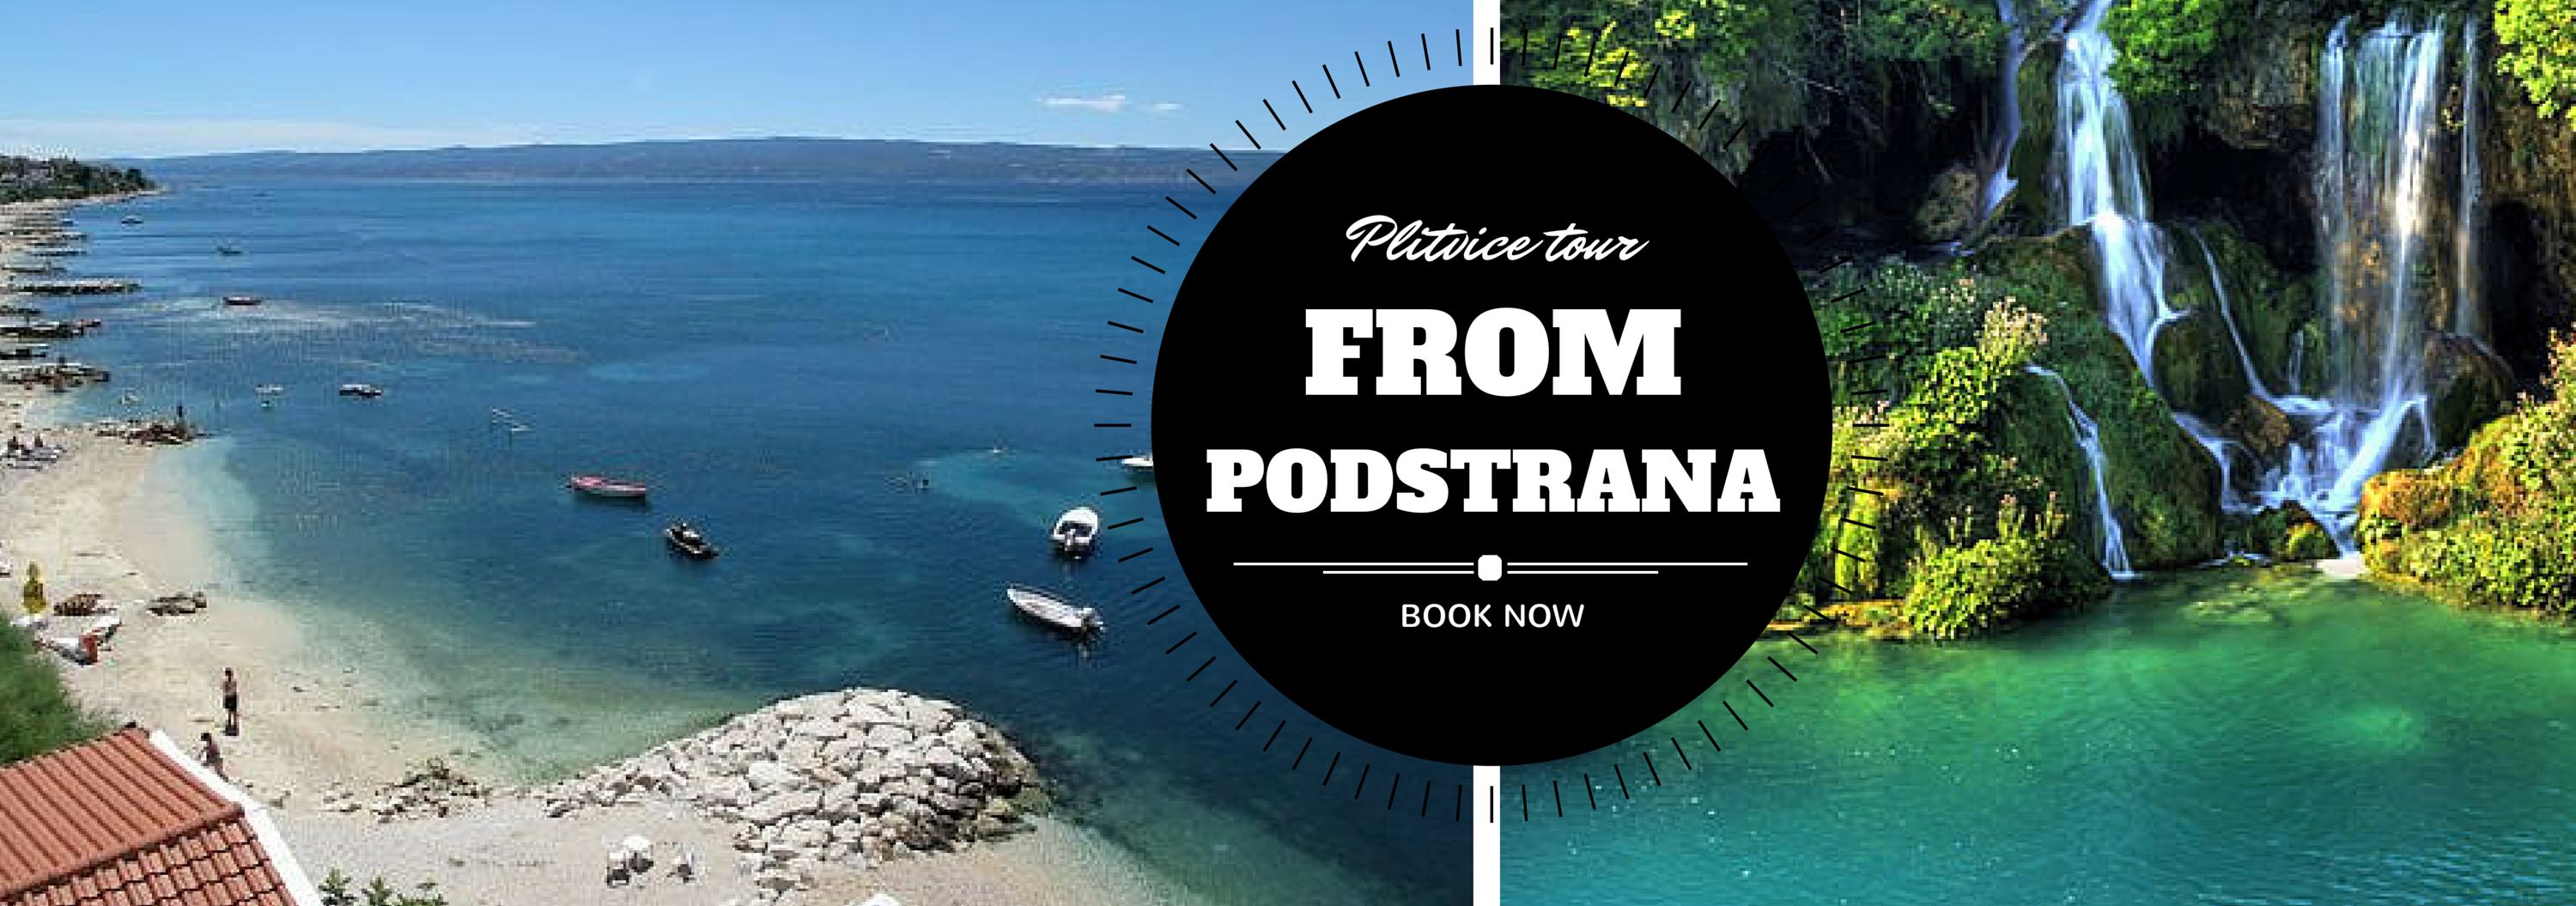 Plitvice lakes tour from Podstrana.